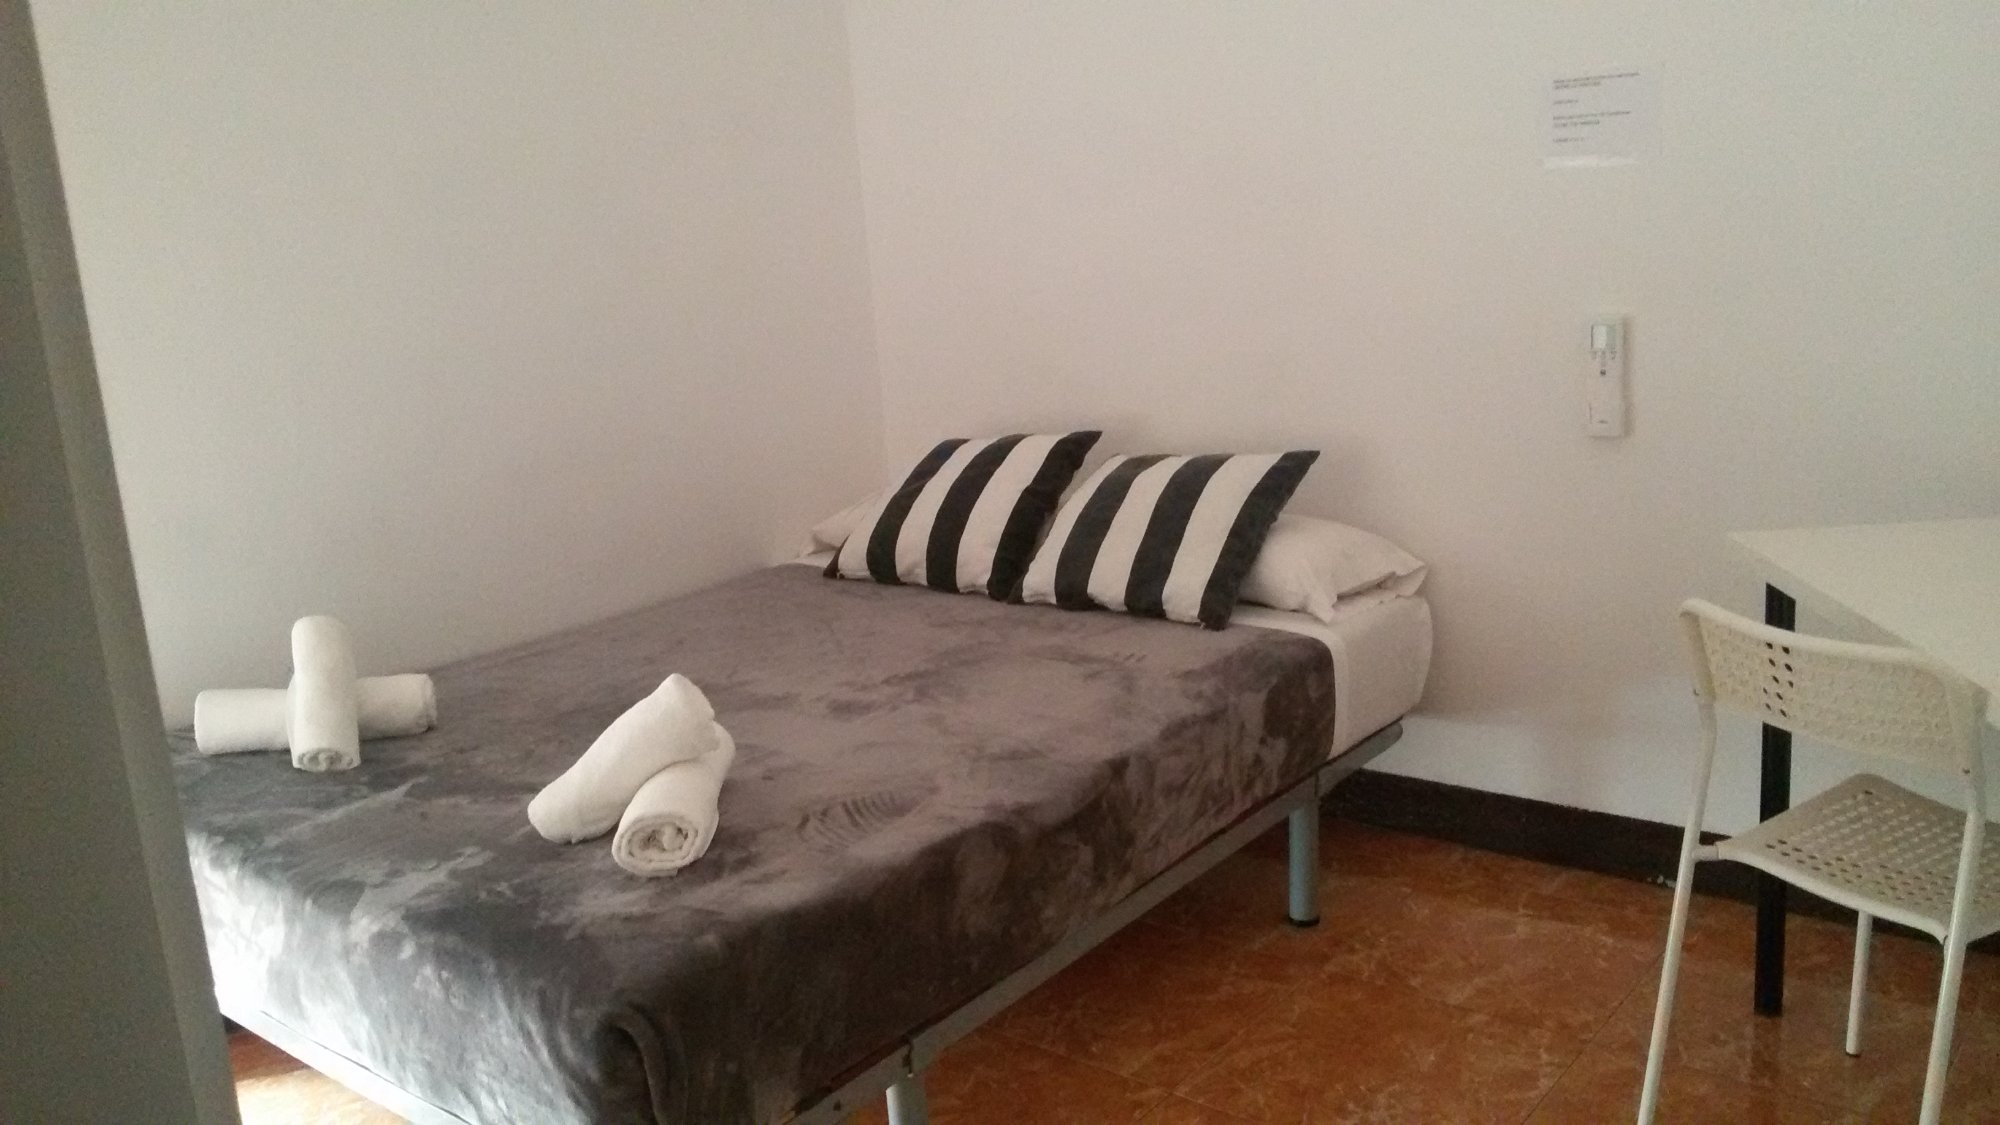 MY BED BCN UPDATED 2018 Hostel Reviews & Price parison